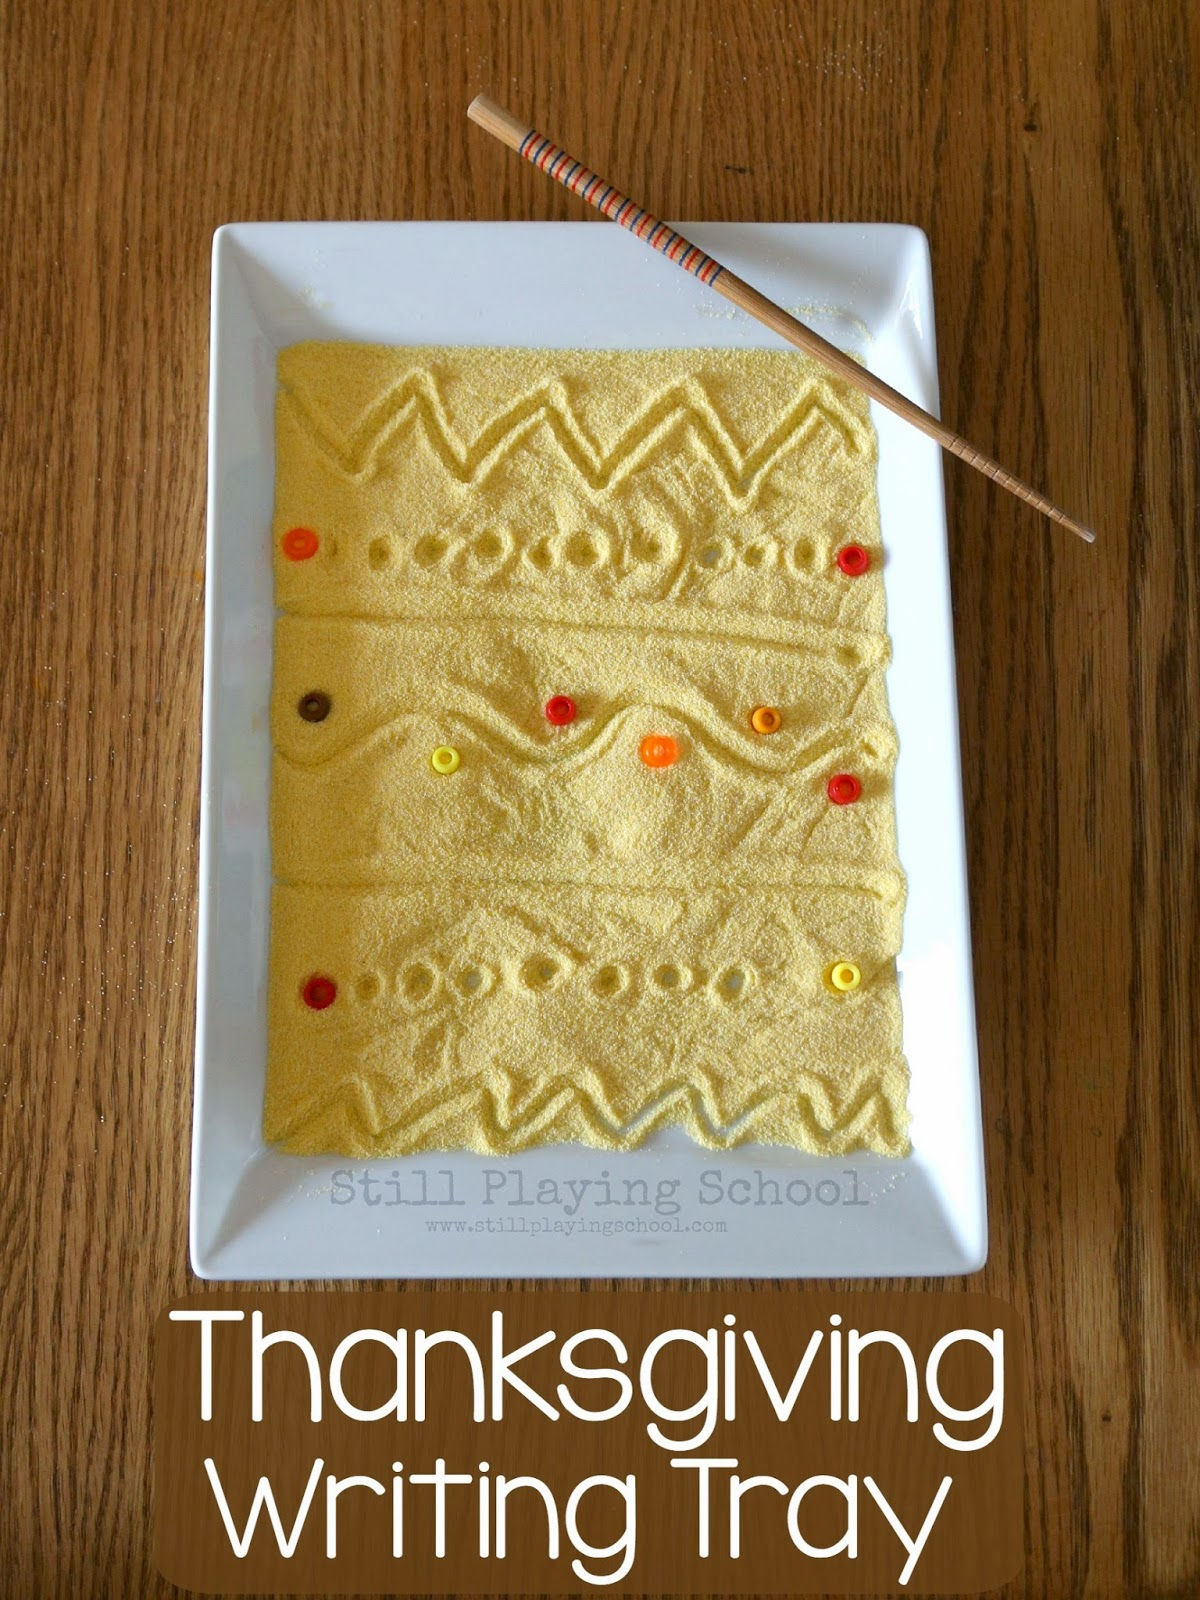 Thanksgiving Writing Tray